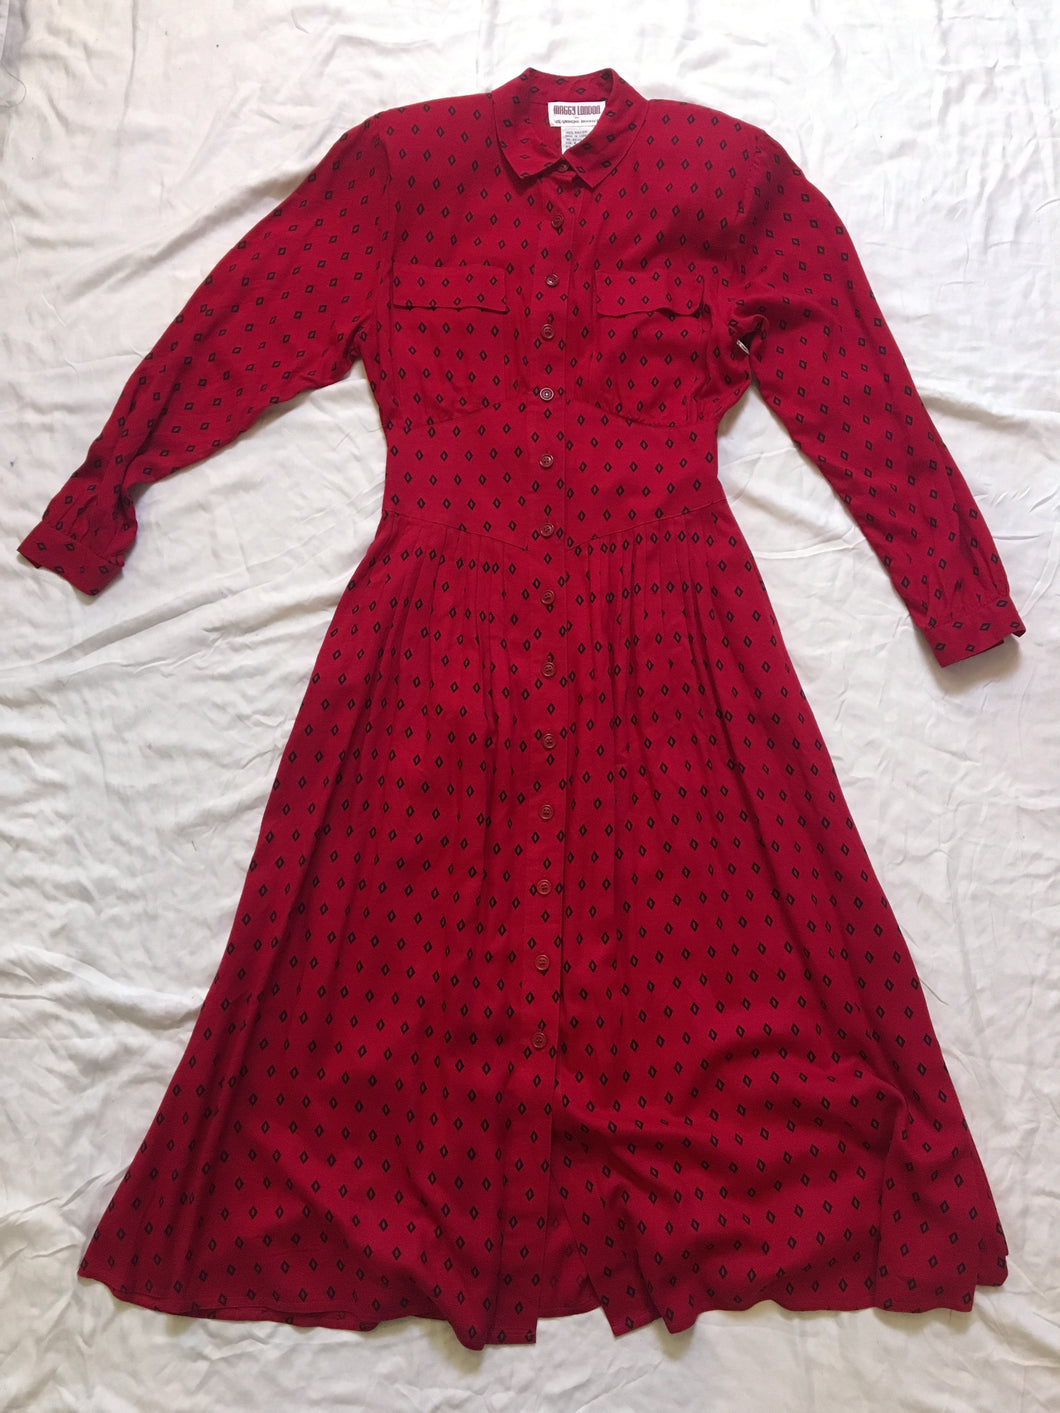 Vintage Maggy London Dress - Red